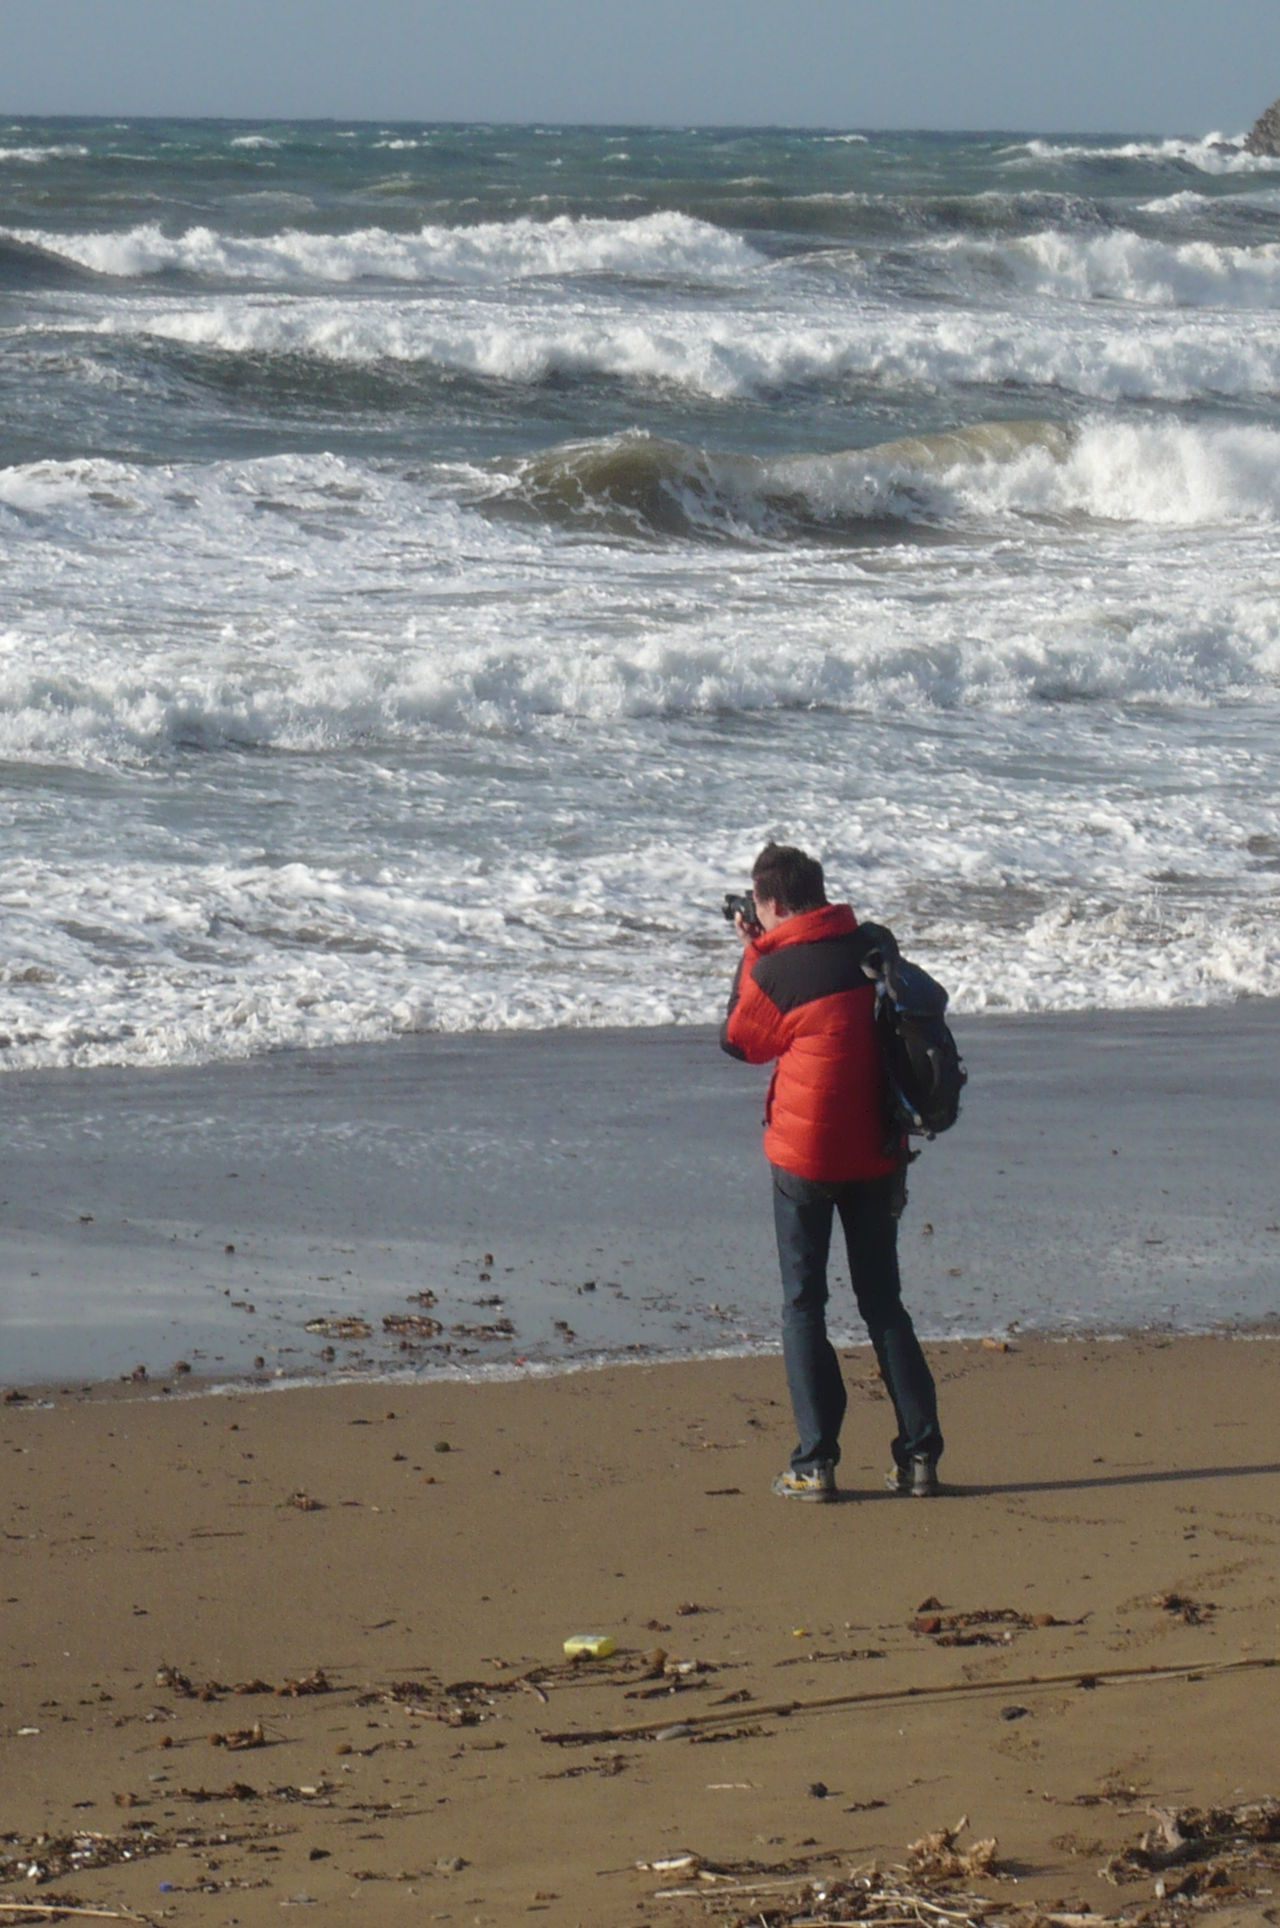 The Tourist Baratti Golfo Di Baratti Italy Sea And Sky Waves Man Taking Picture Man Taking Photo Early Spring